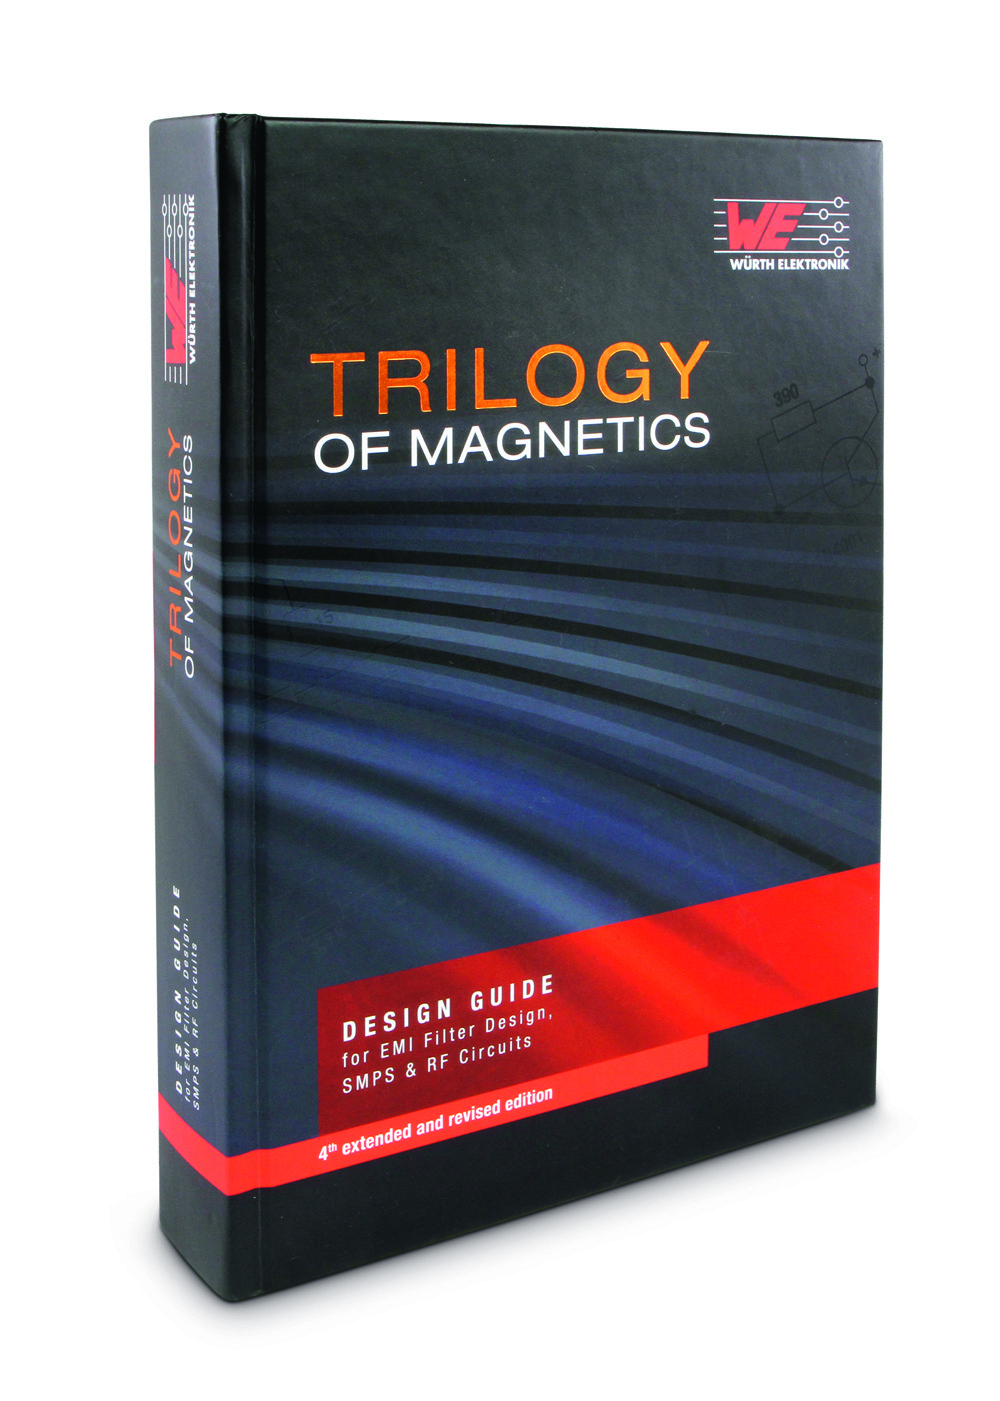 Trilogy of Magnetics (6th Edition)